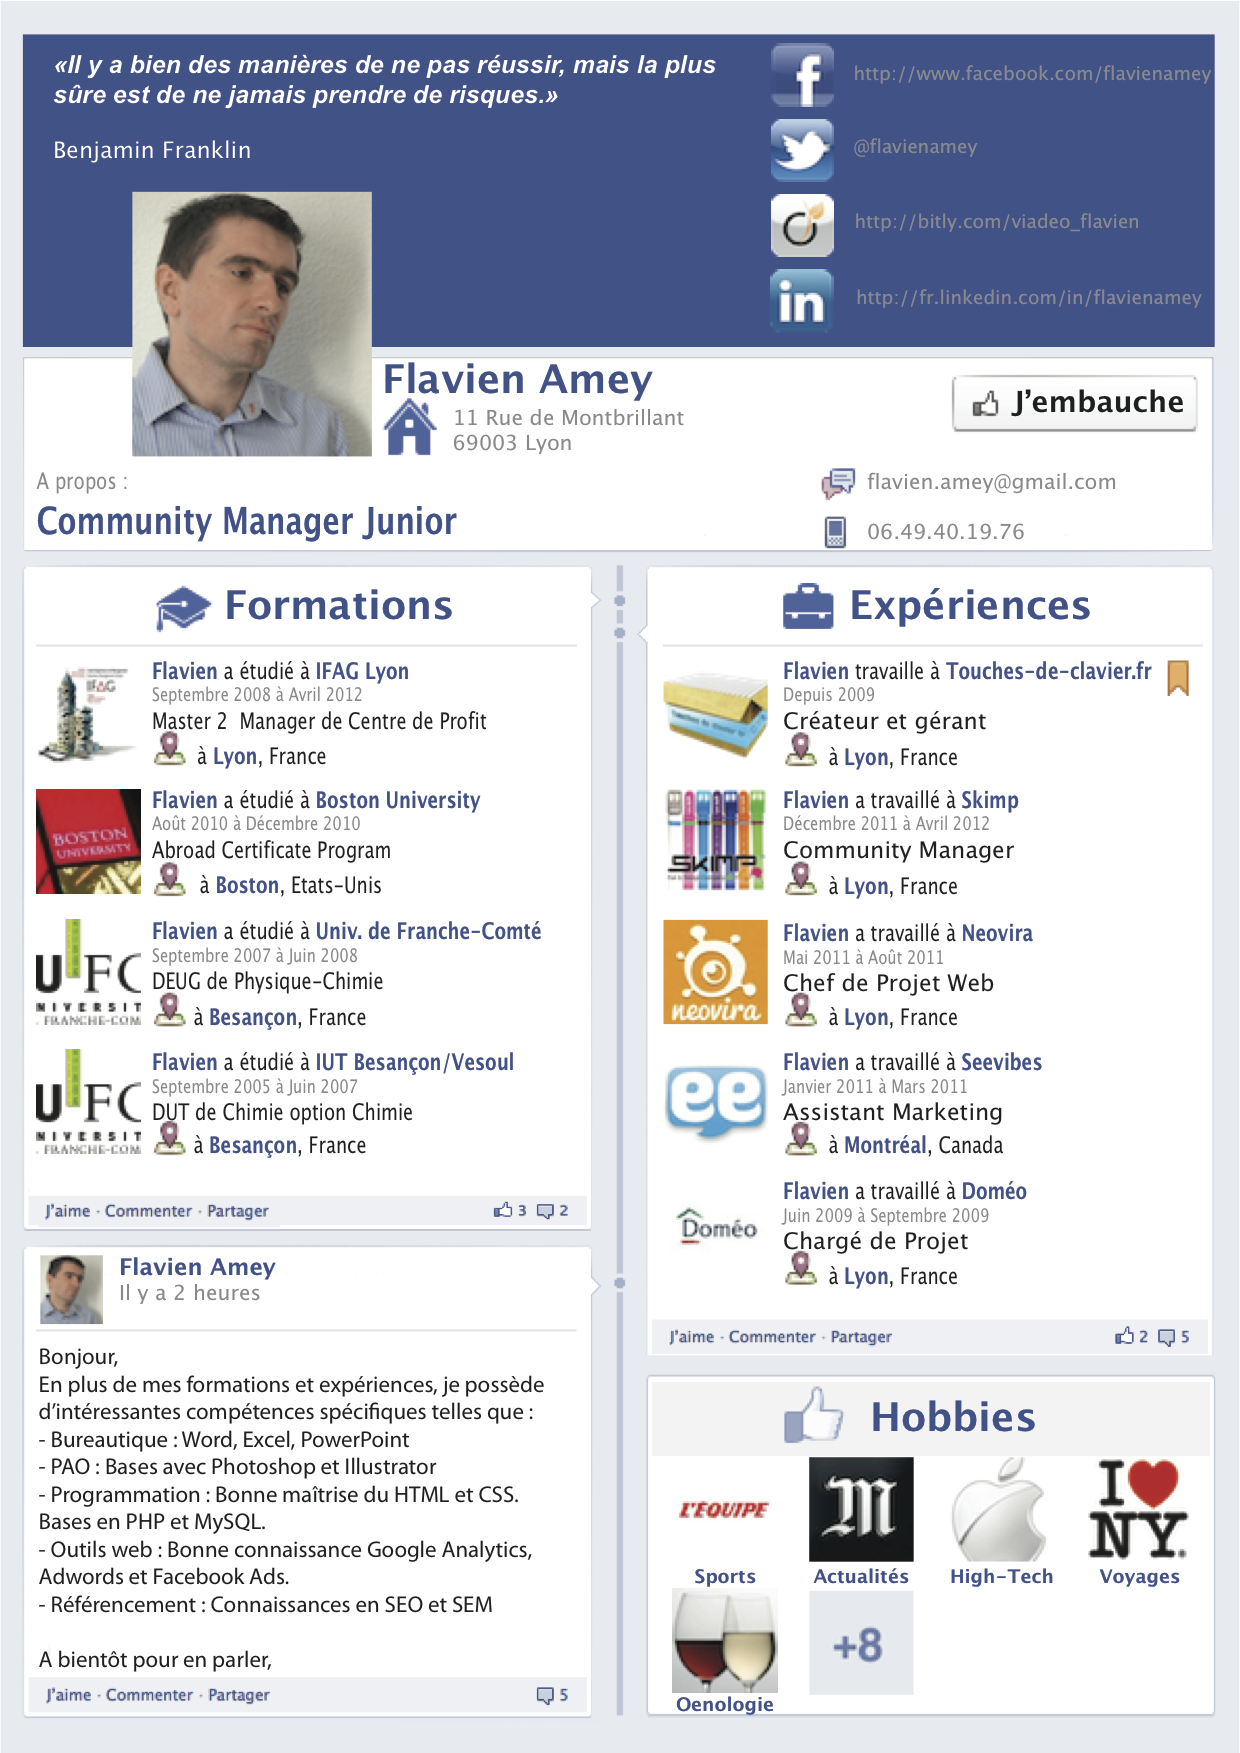 Pin By Ylle Ylle On Marketing Community Manager Social Media Facebook Timeline Job Cv